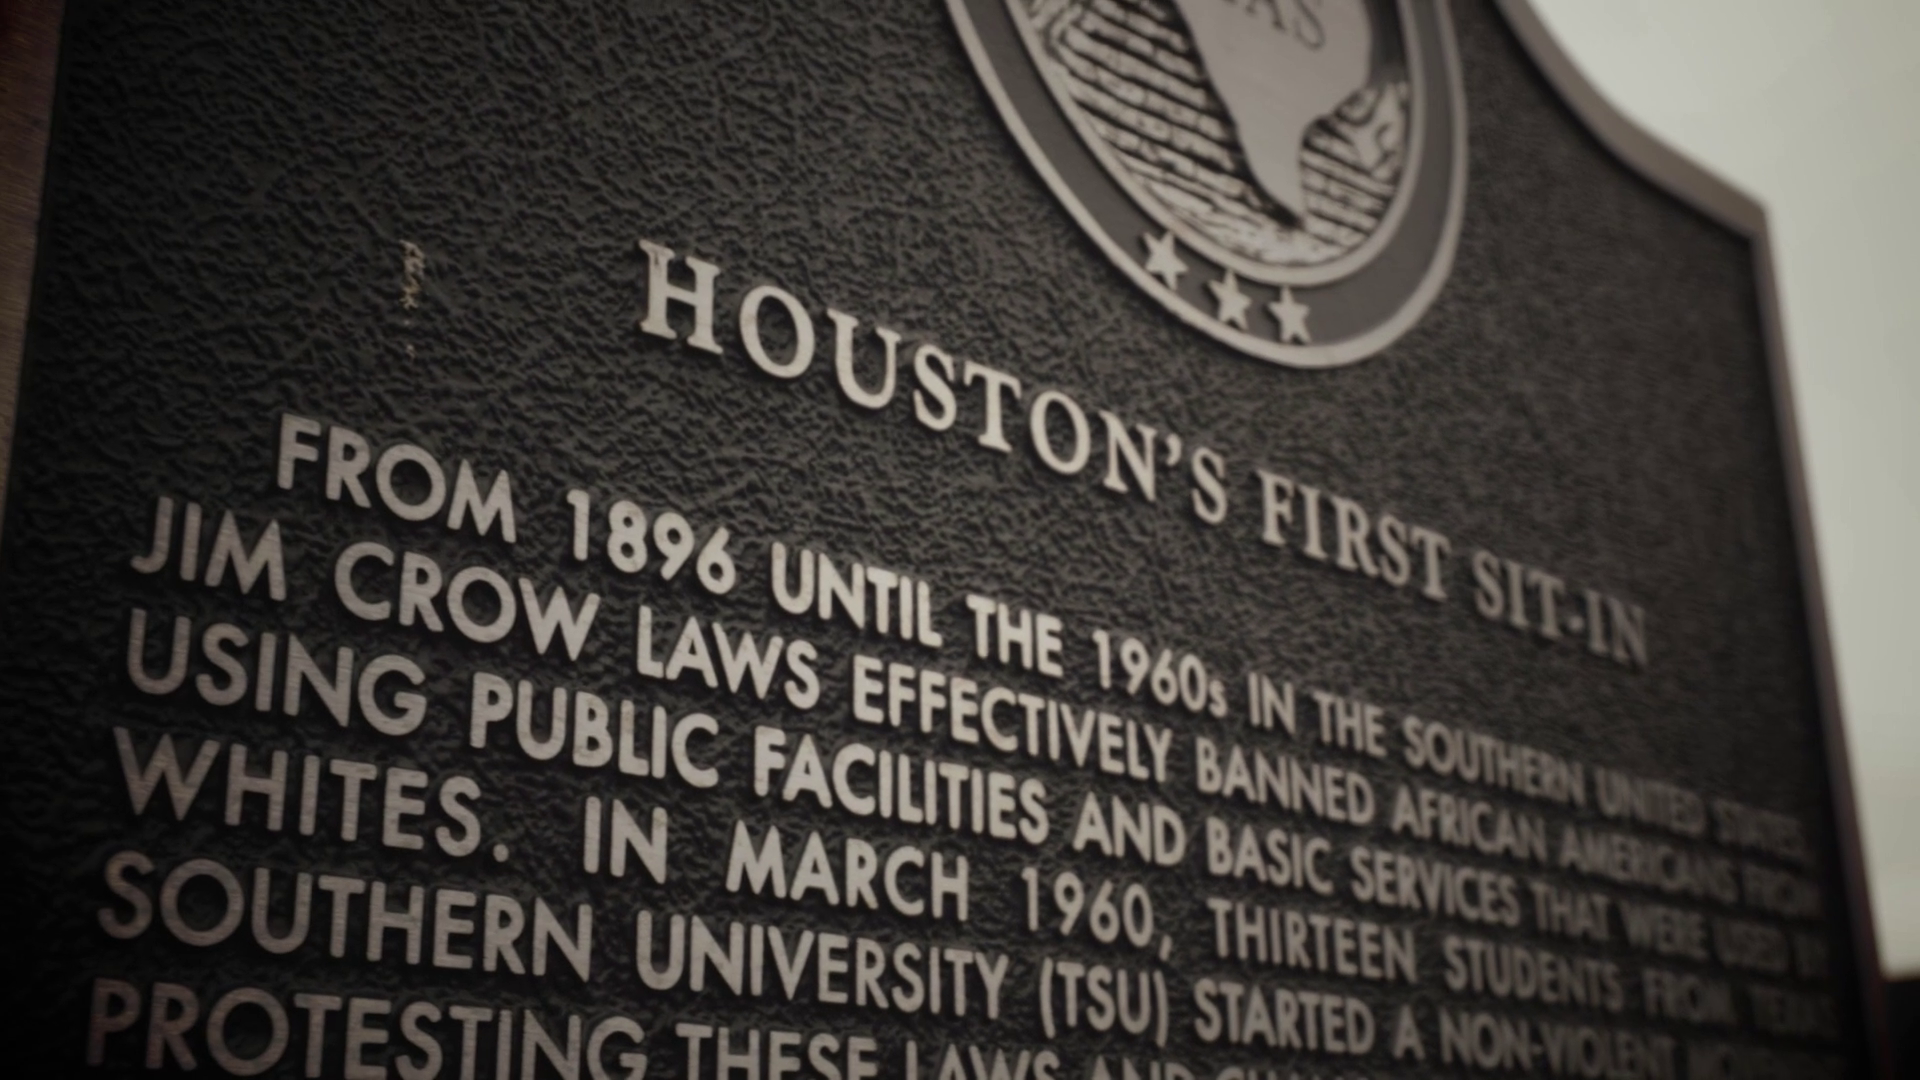 Houston's First Sit-in at TSU in 1960